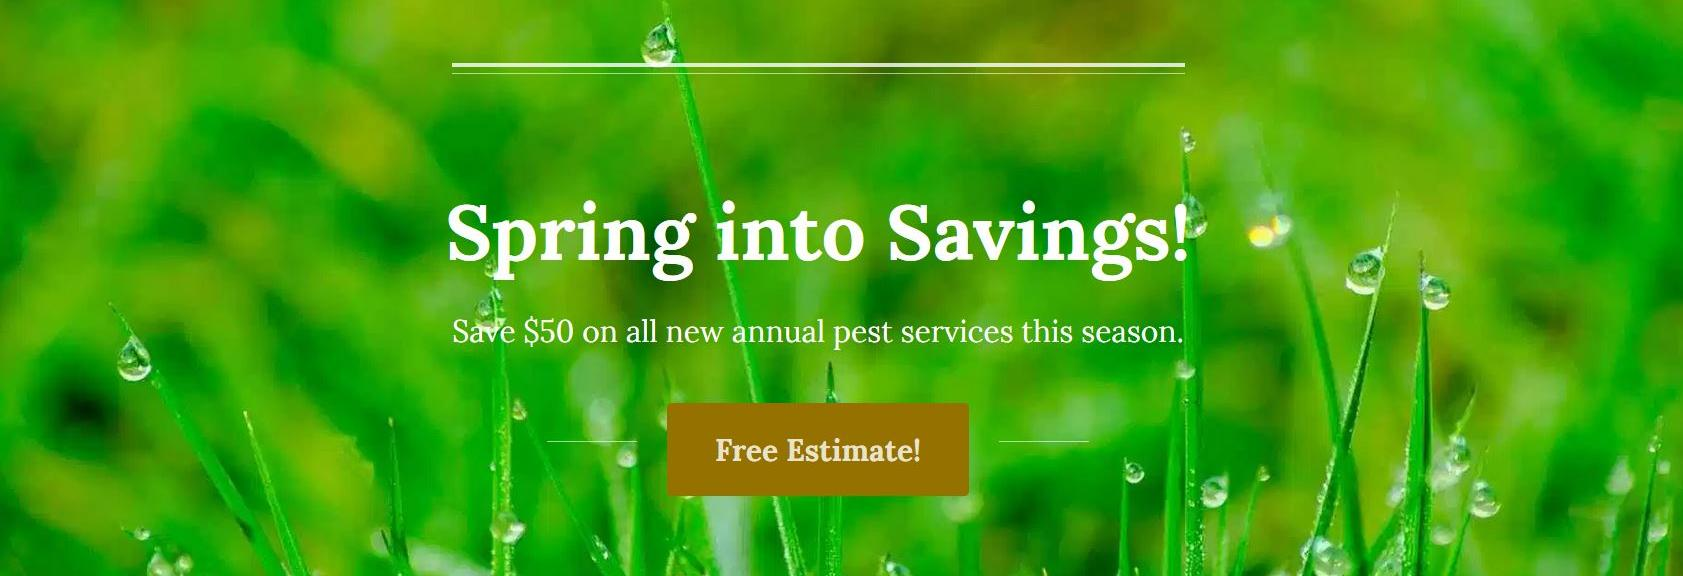 mosquito pest control, bedbugs, termites, ants, carpenter bees, mouse, mice, bats, rodents, bees